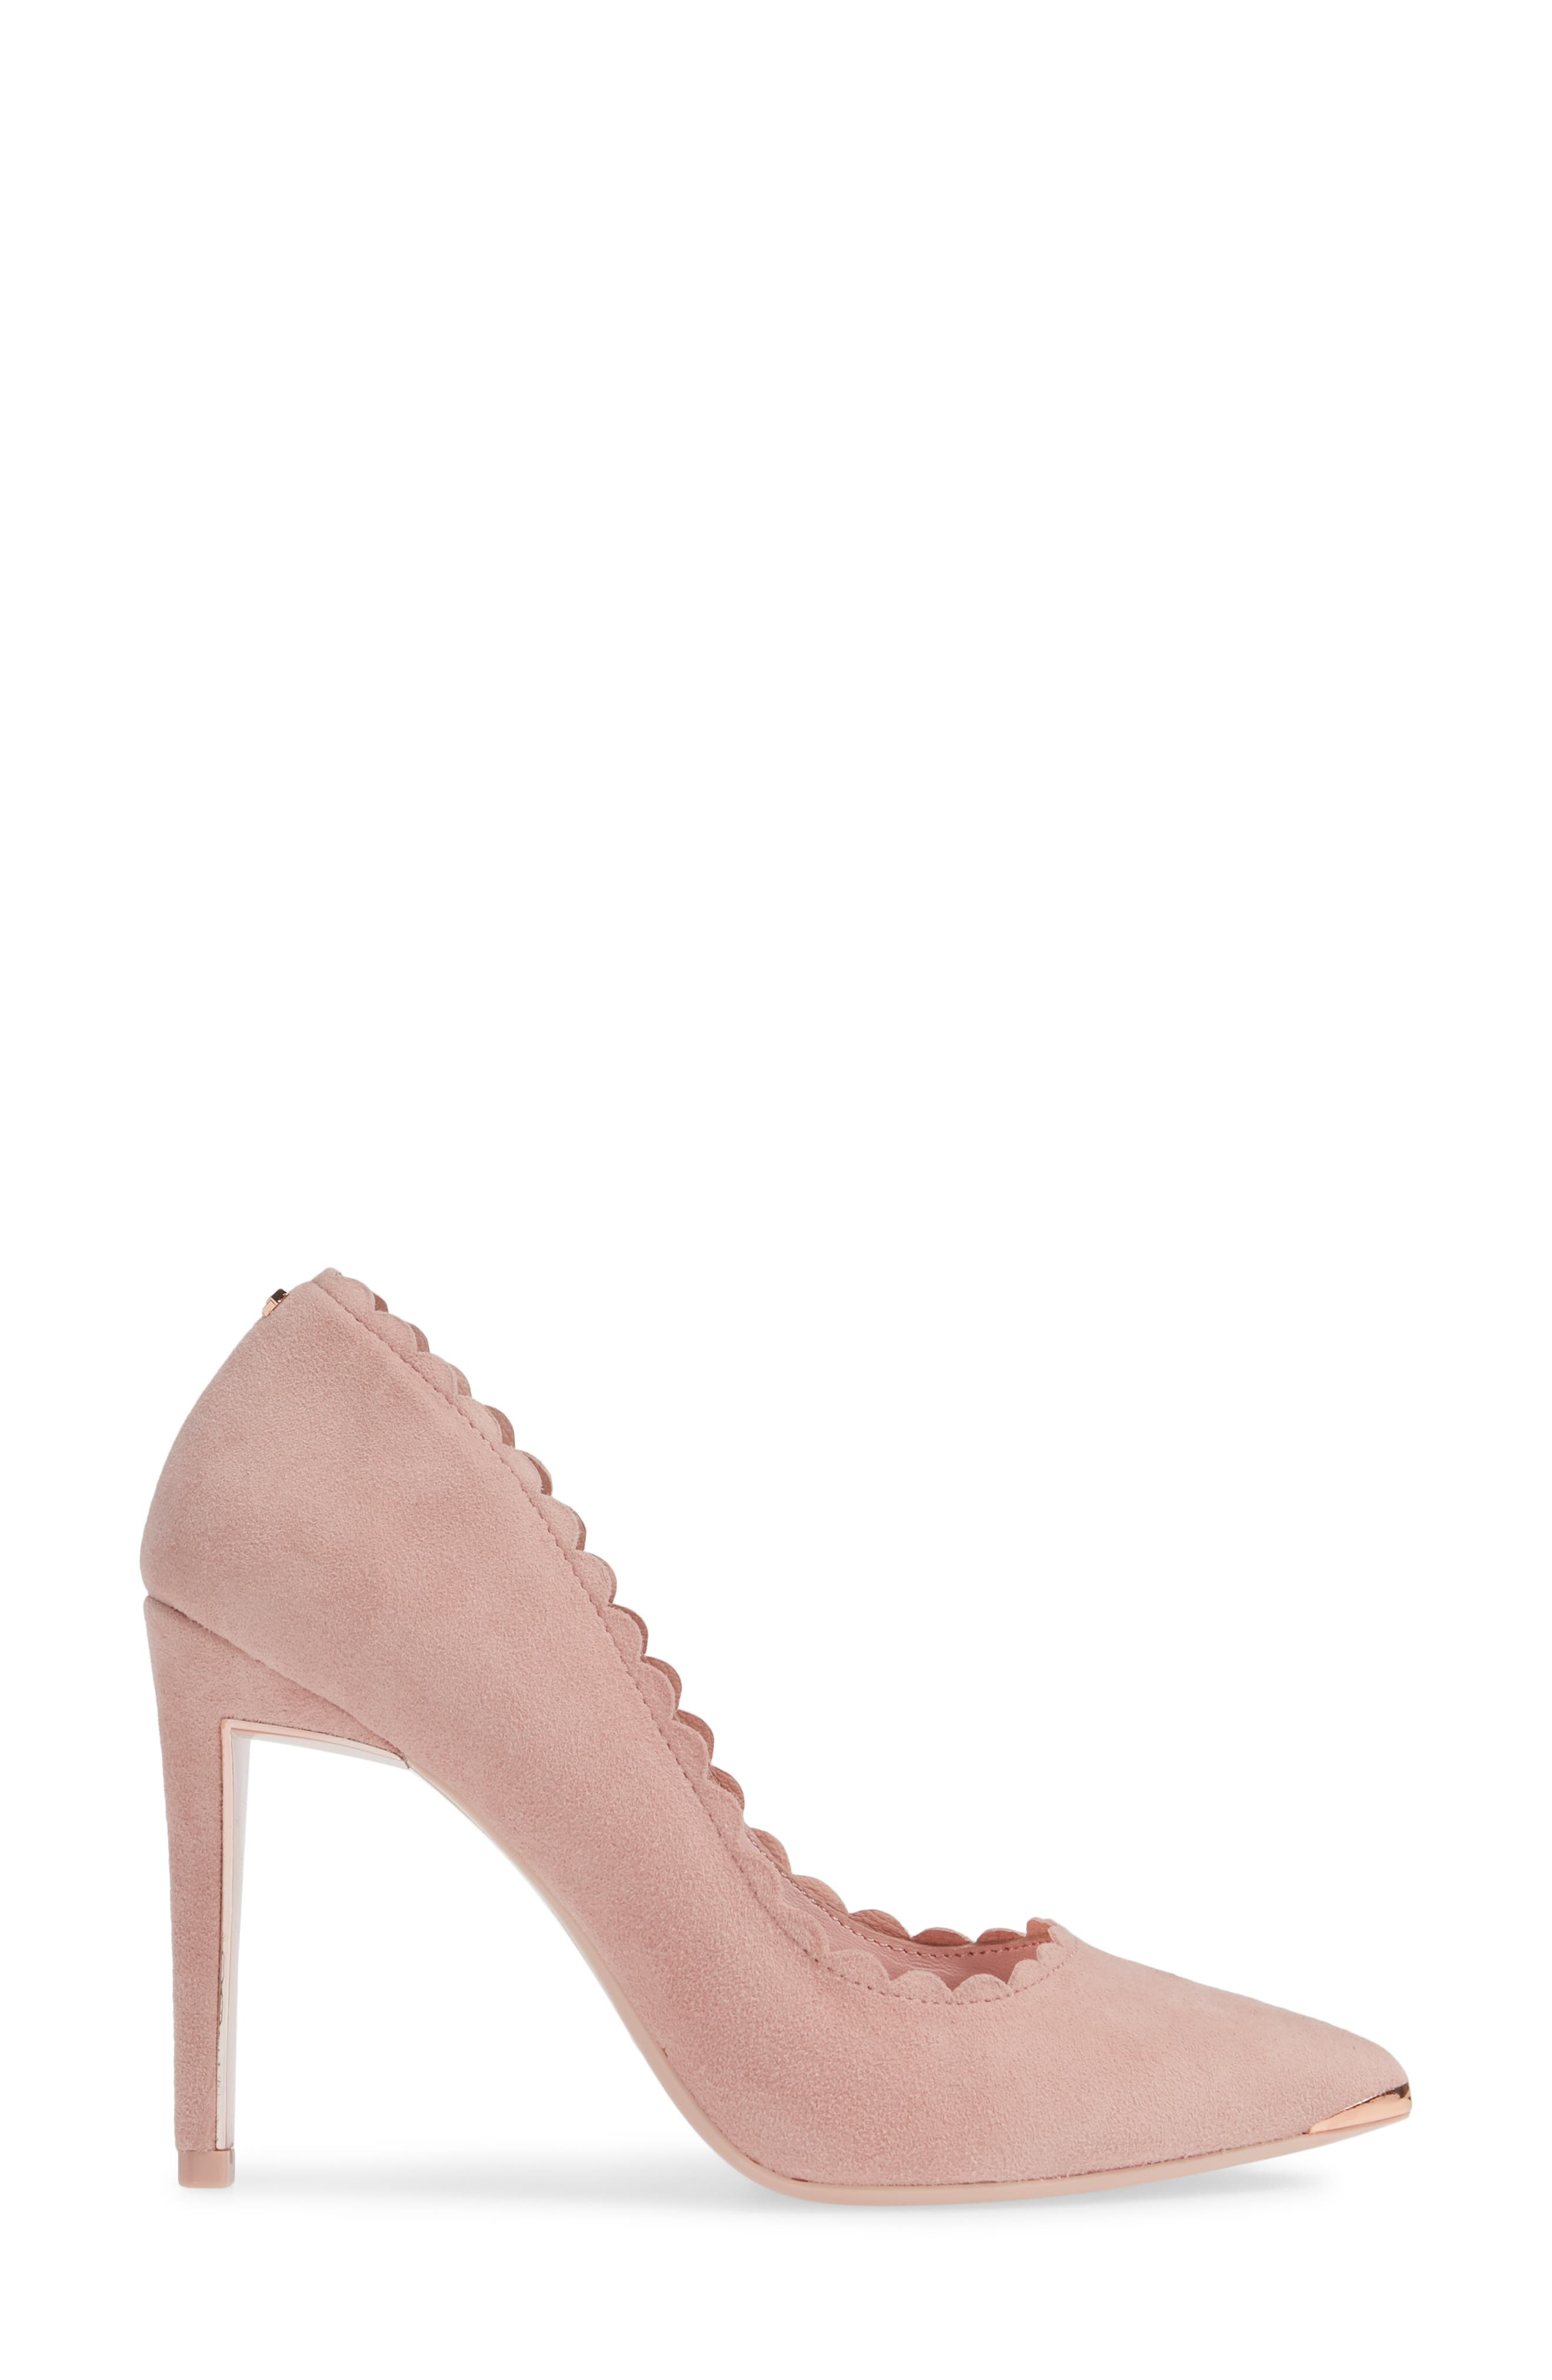 TED BAKER LONDON, Sloana Pointy Toe Pump, Alternate thumbnail 3, color, PINK BLOSSOM SUEDE